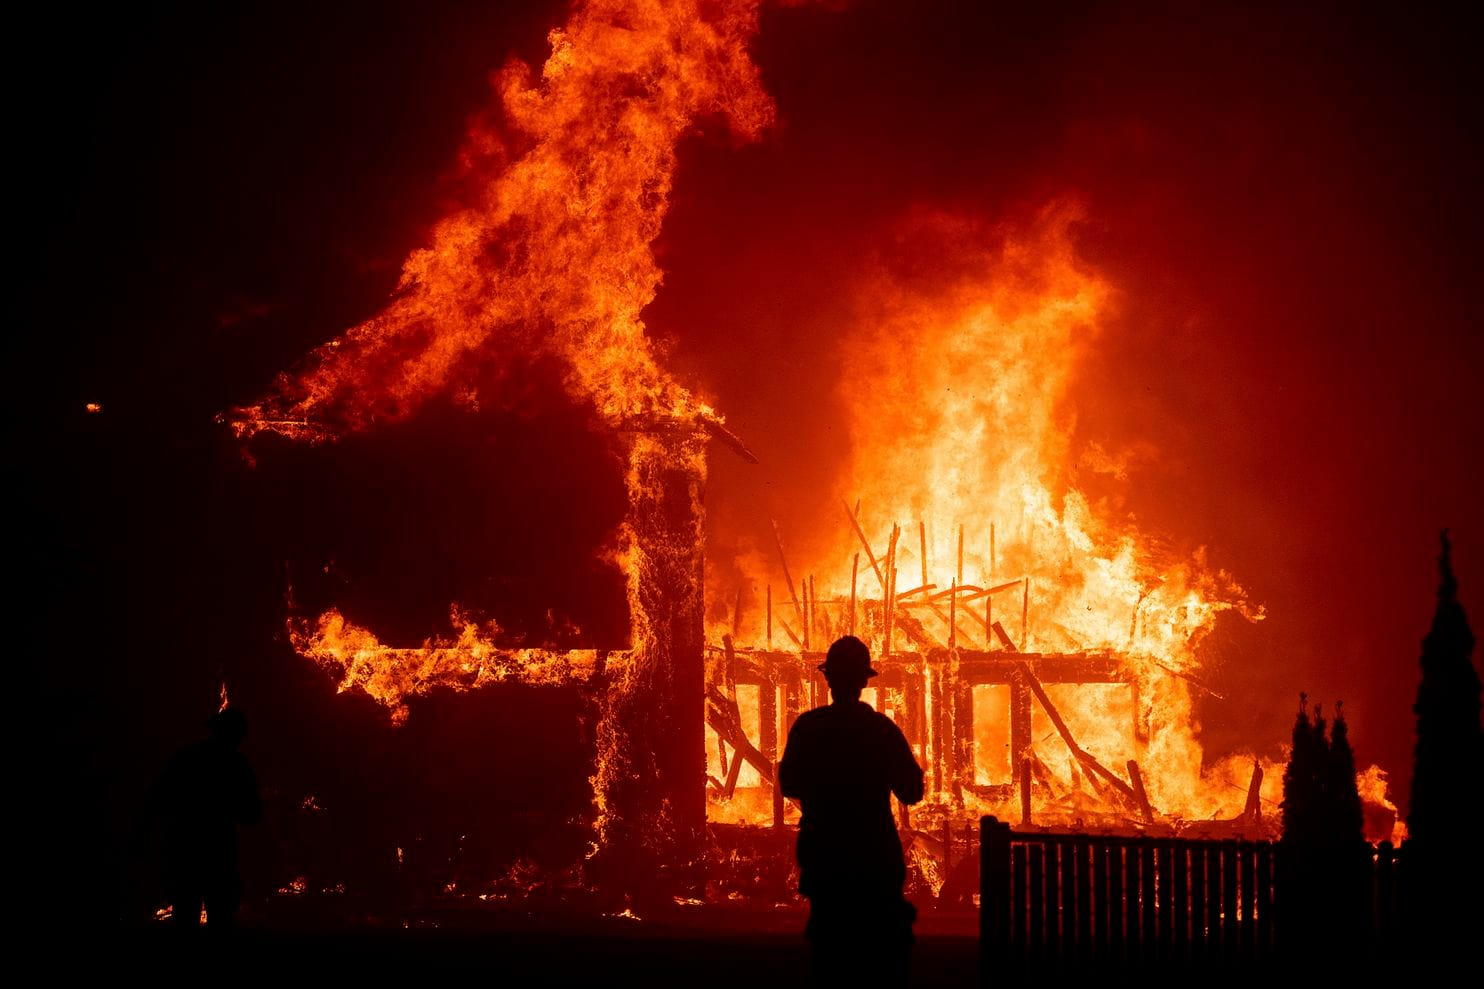 The Camp Fire in Paradise, California as captured by the Washington Post.